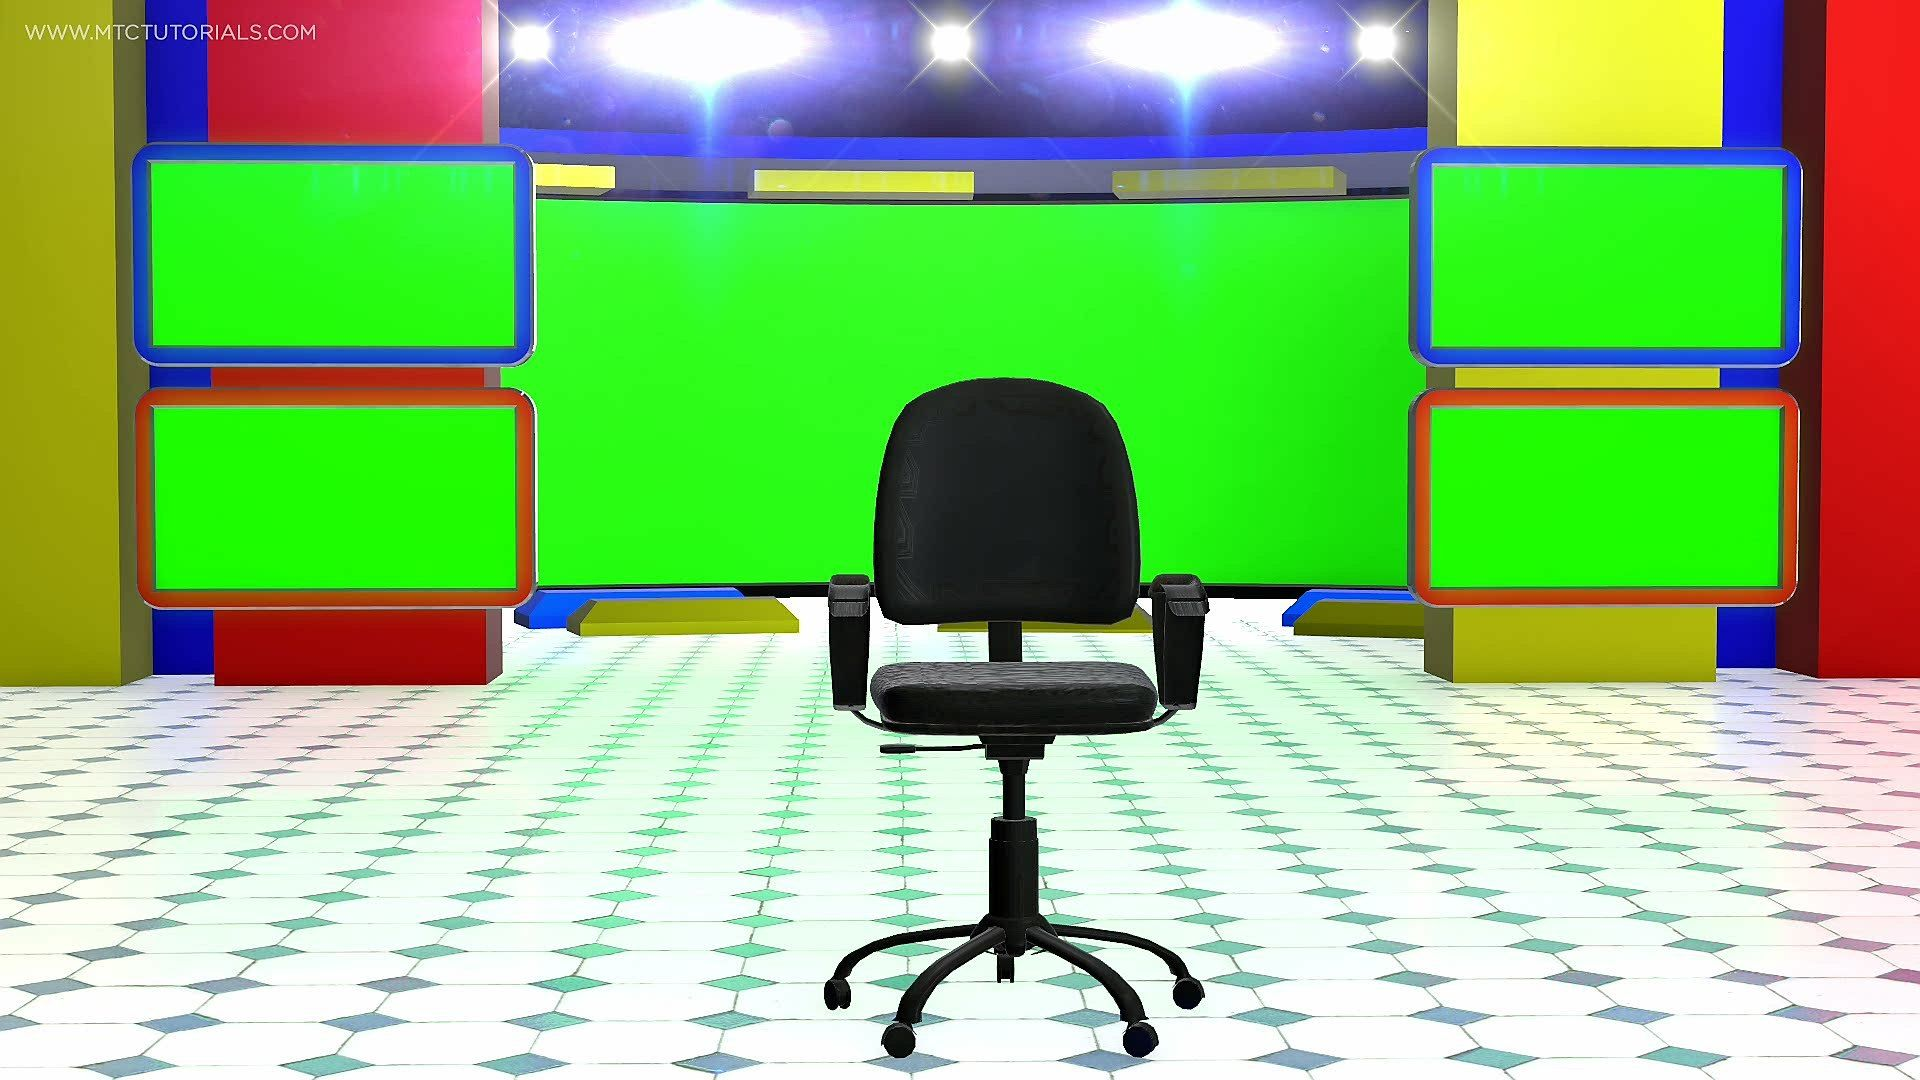 Studio Desk Free Backgrounds Table And Chair Mtc Tutorials In 2020 Studio Desk Green Screen Video Backgrounds Greenscreen